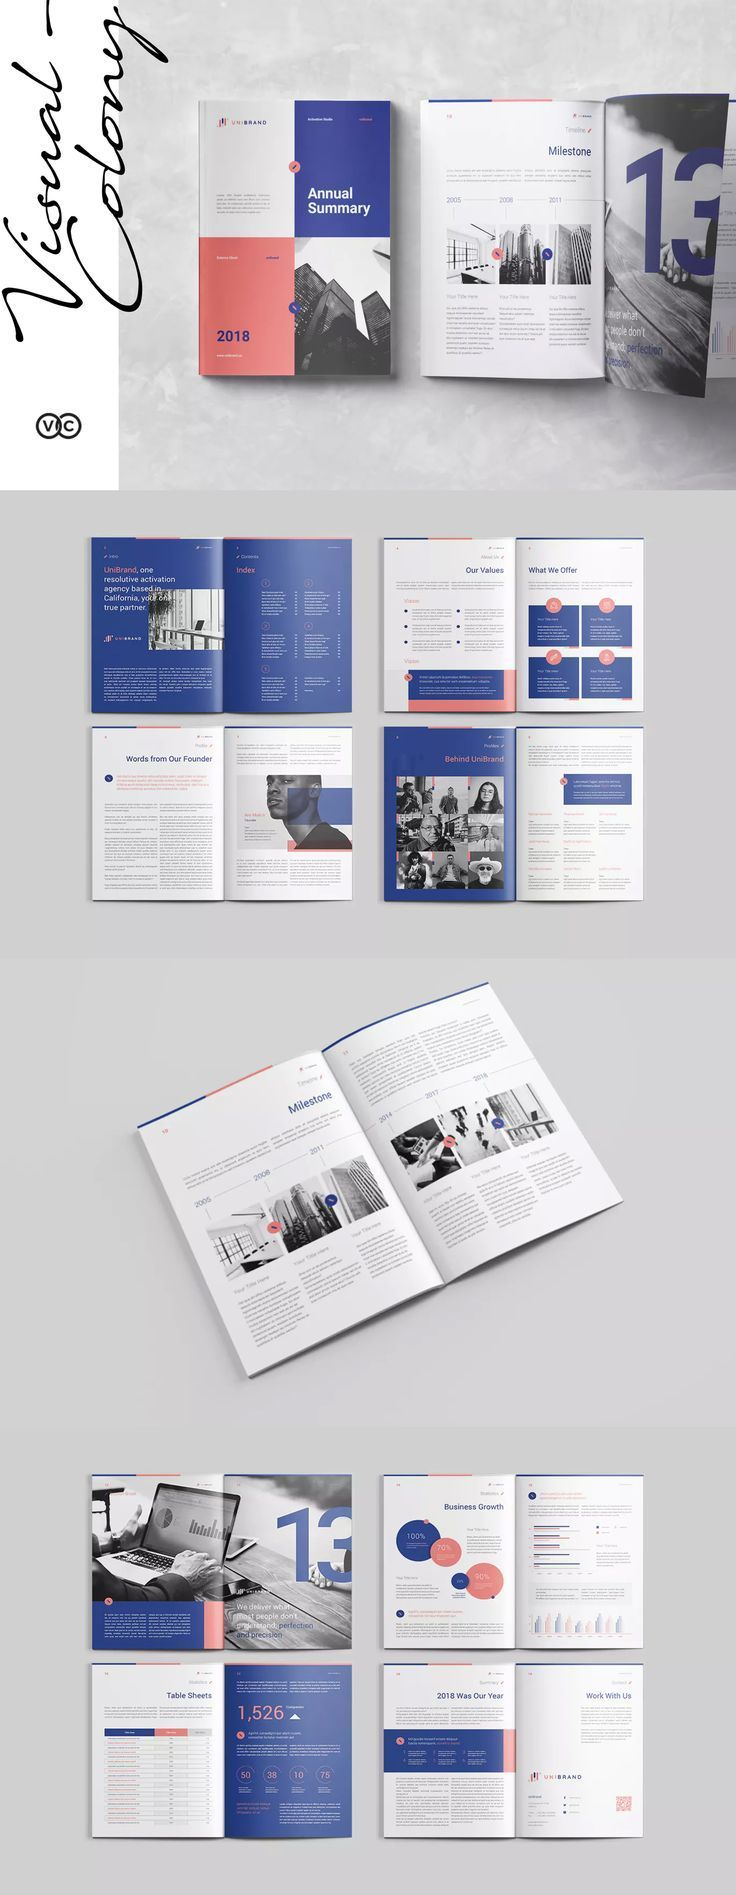 Annual Report Template InDesign INDD - US Letter Size and A4  #unlimiteddownloads #annualreports